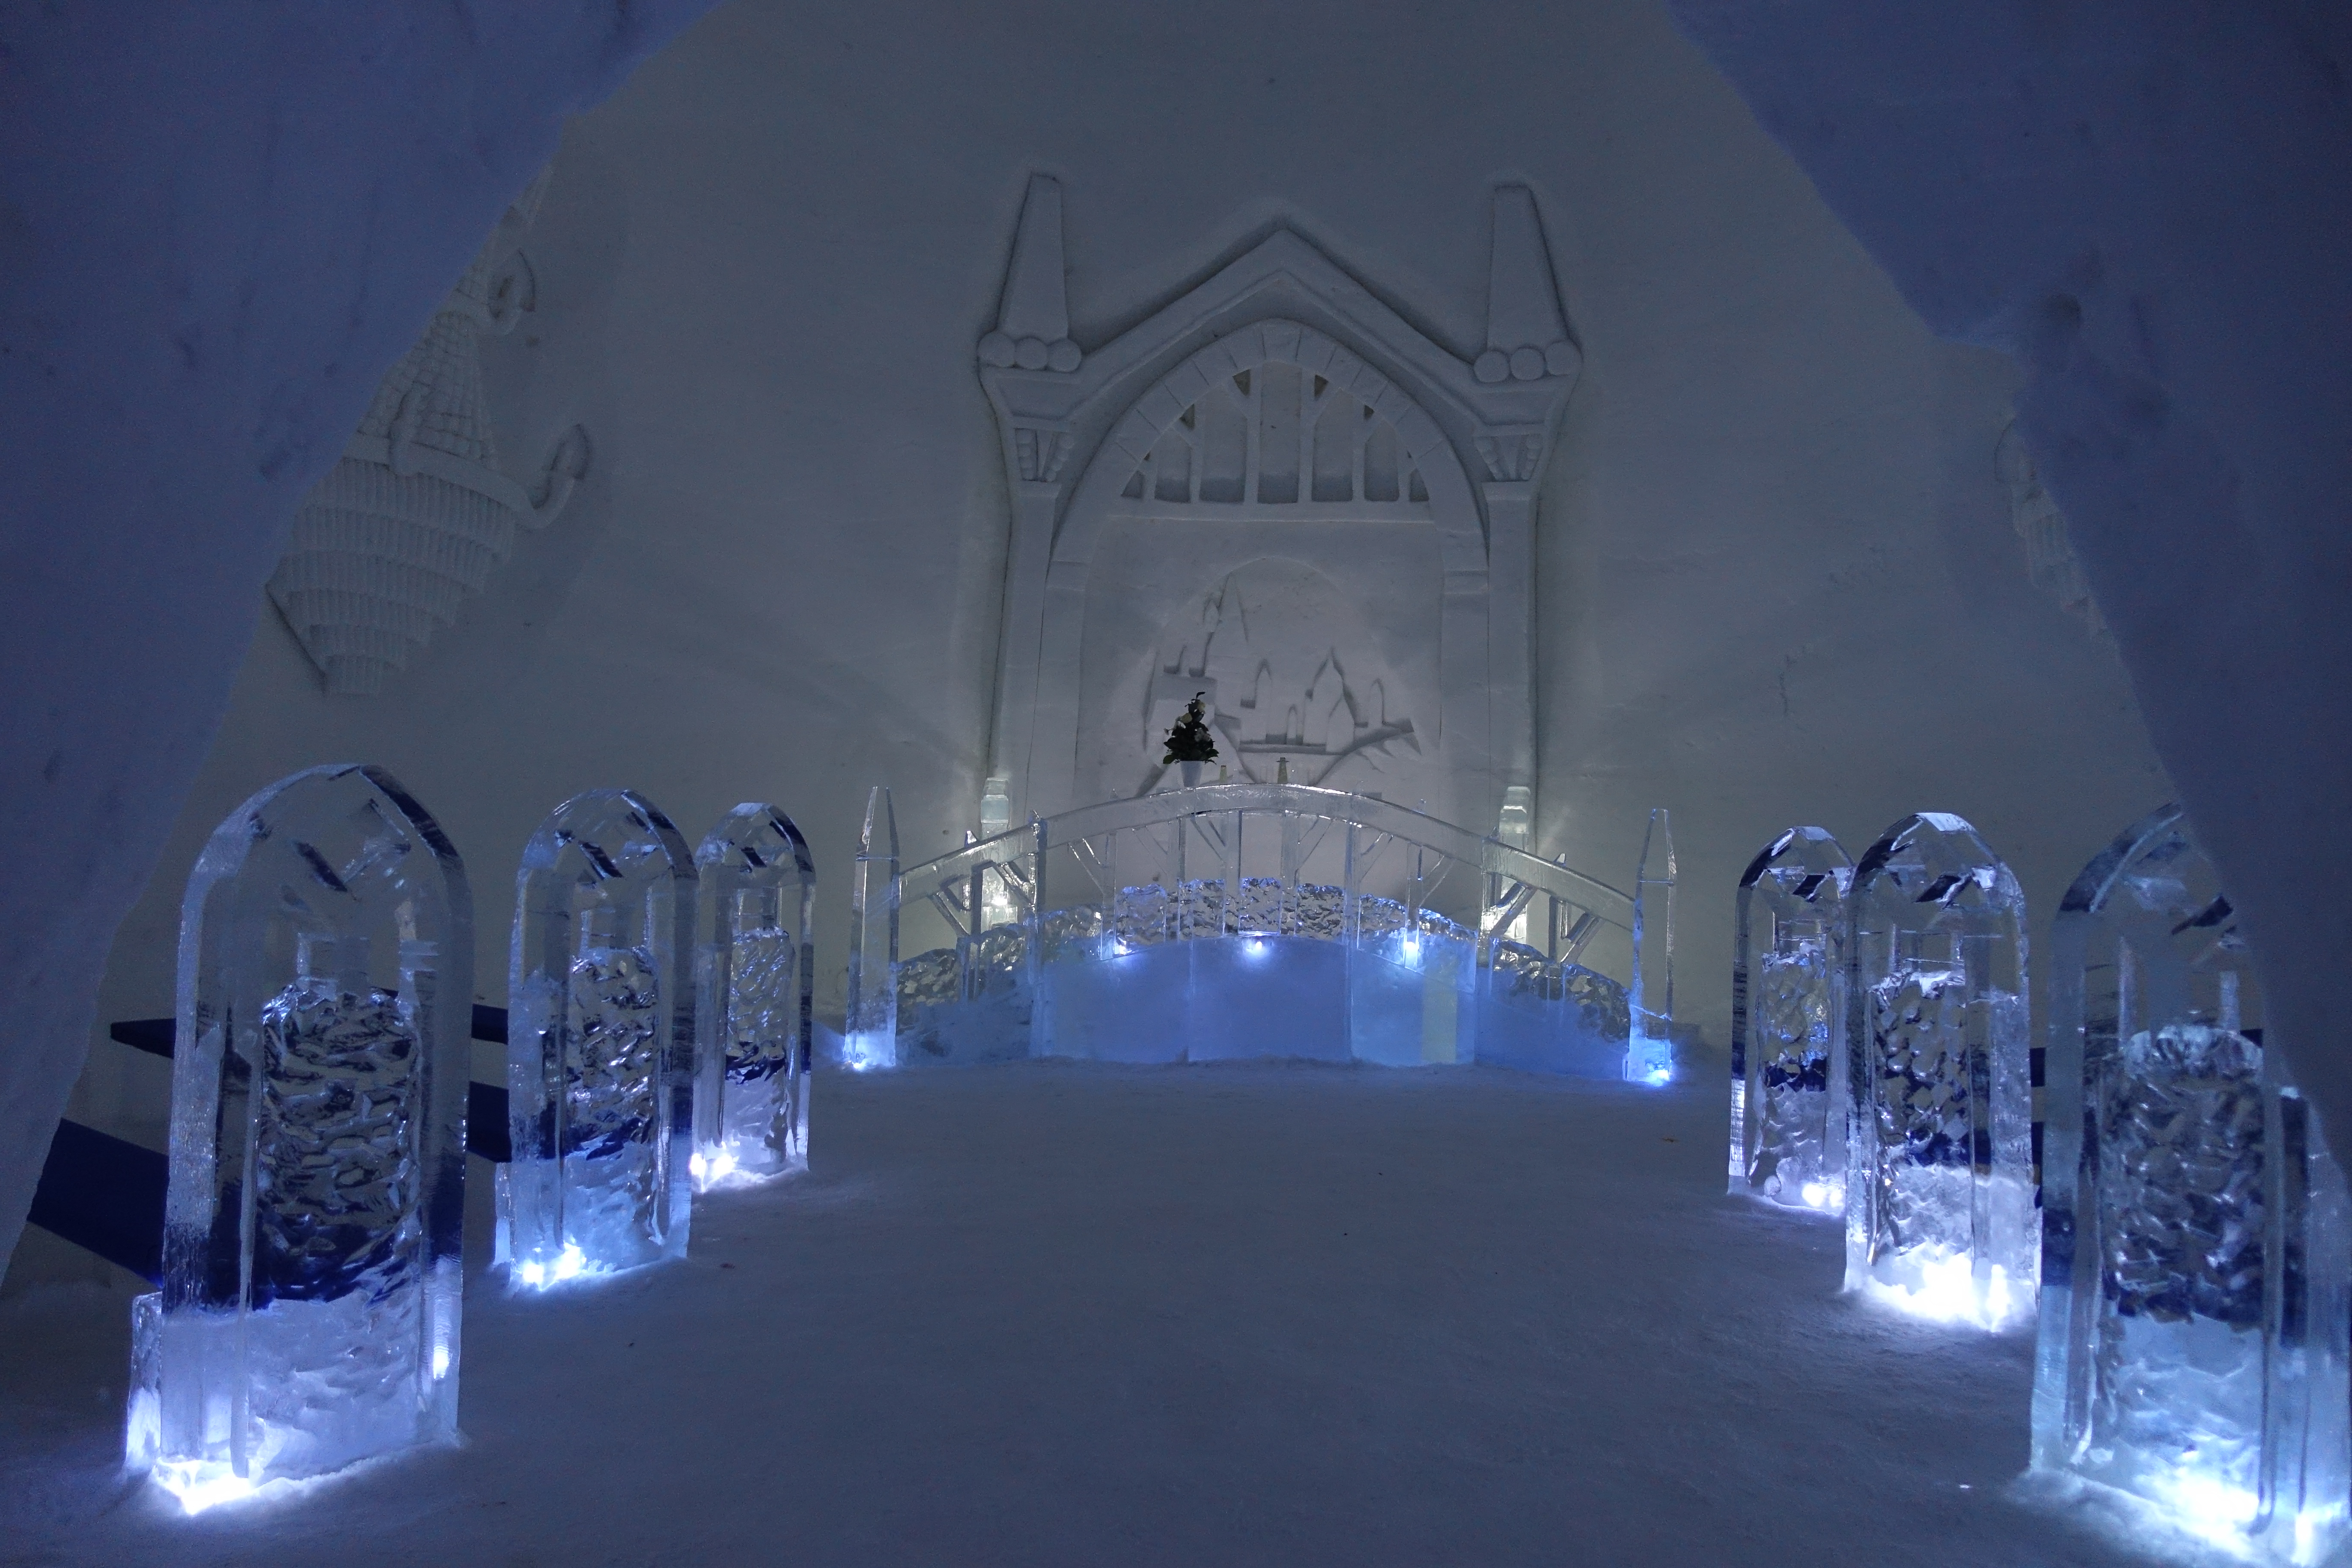 The chapel contains this large ice carving of Hogwarts.